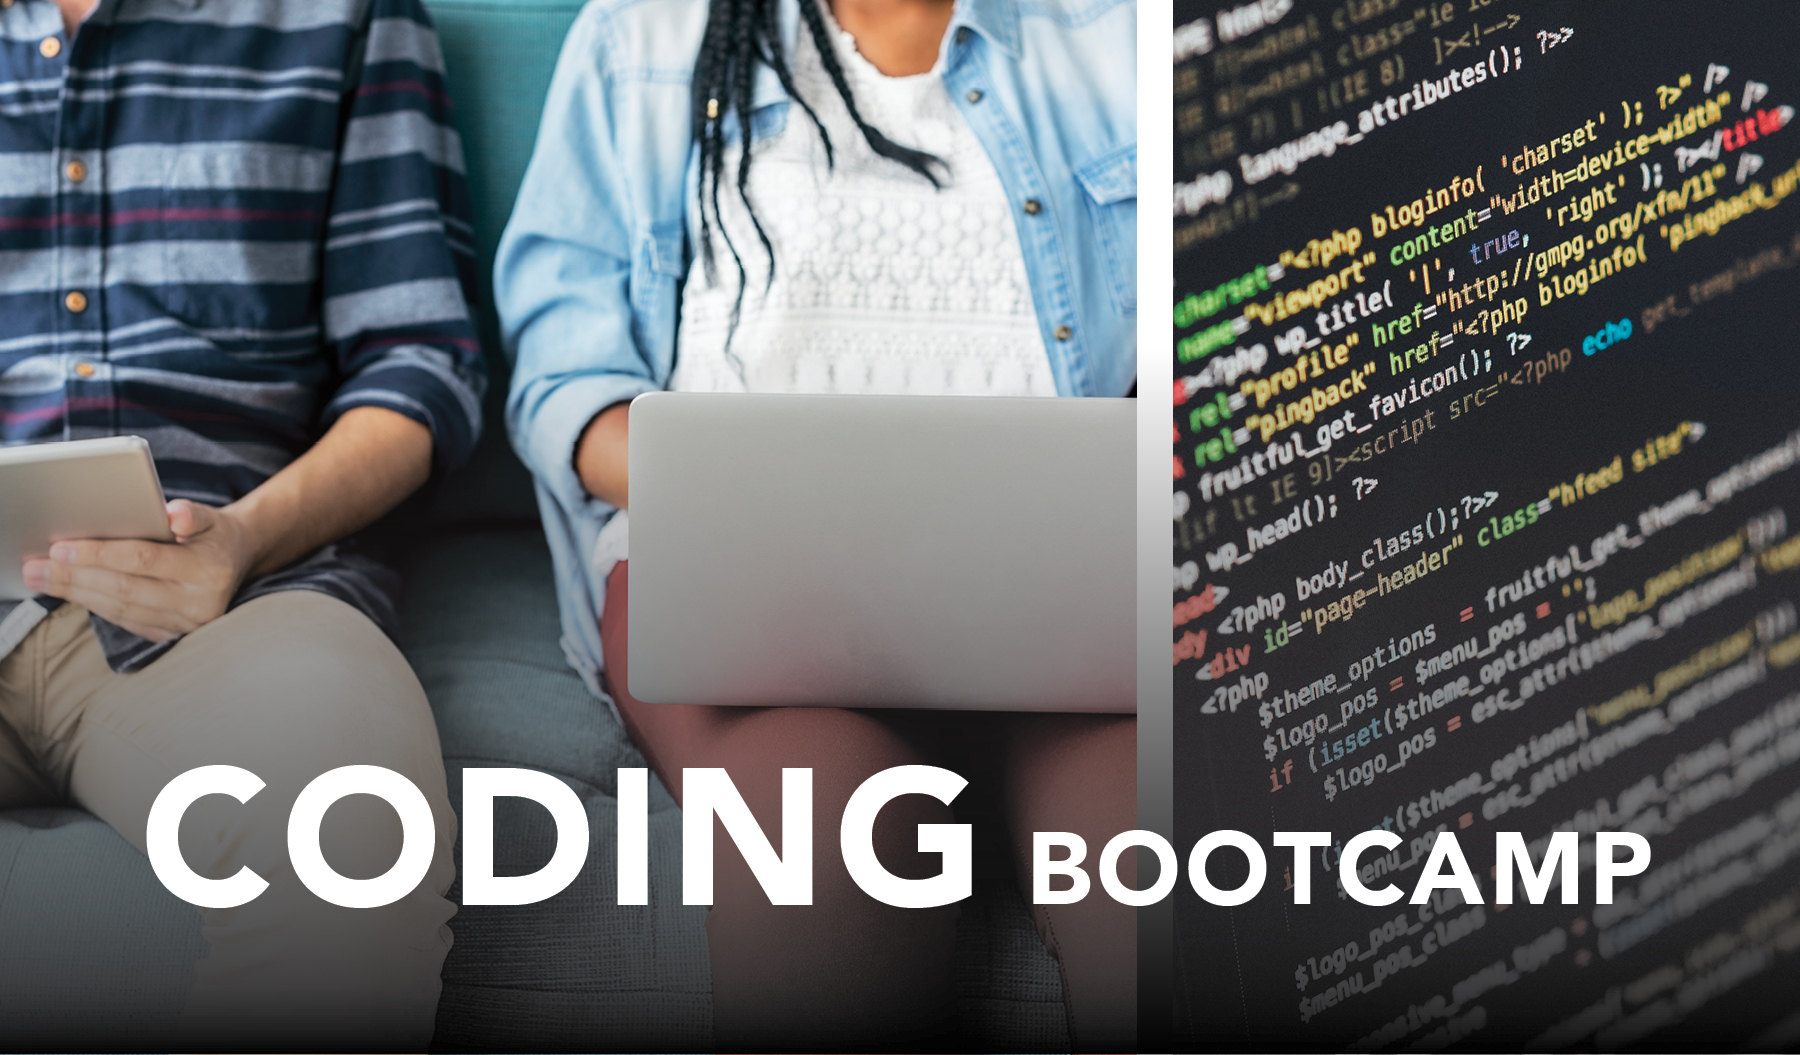 coding bootcamp slide